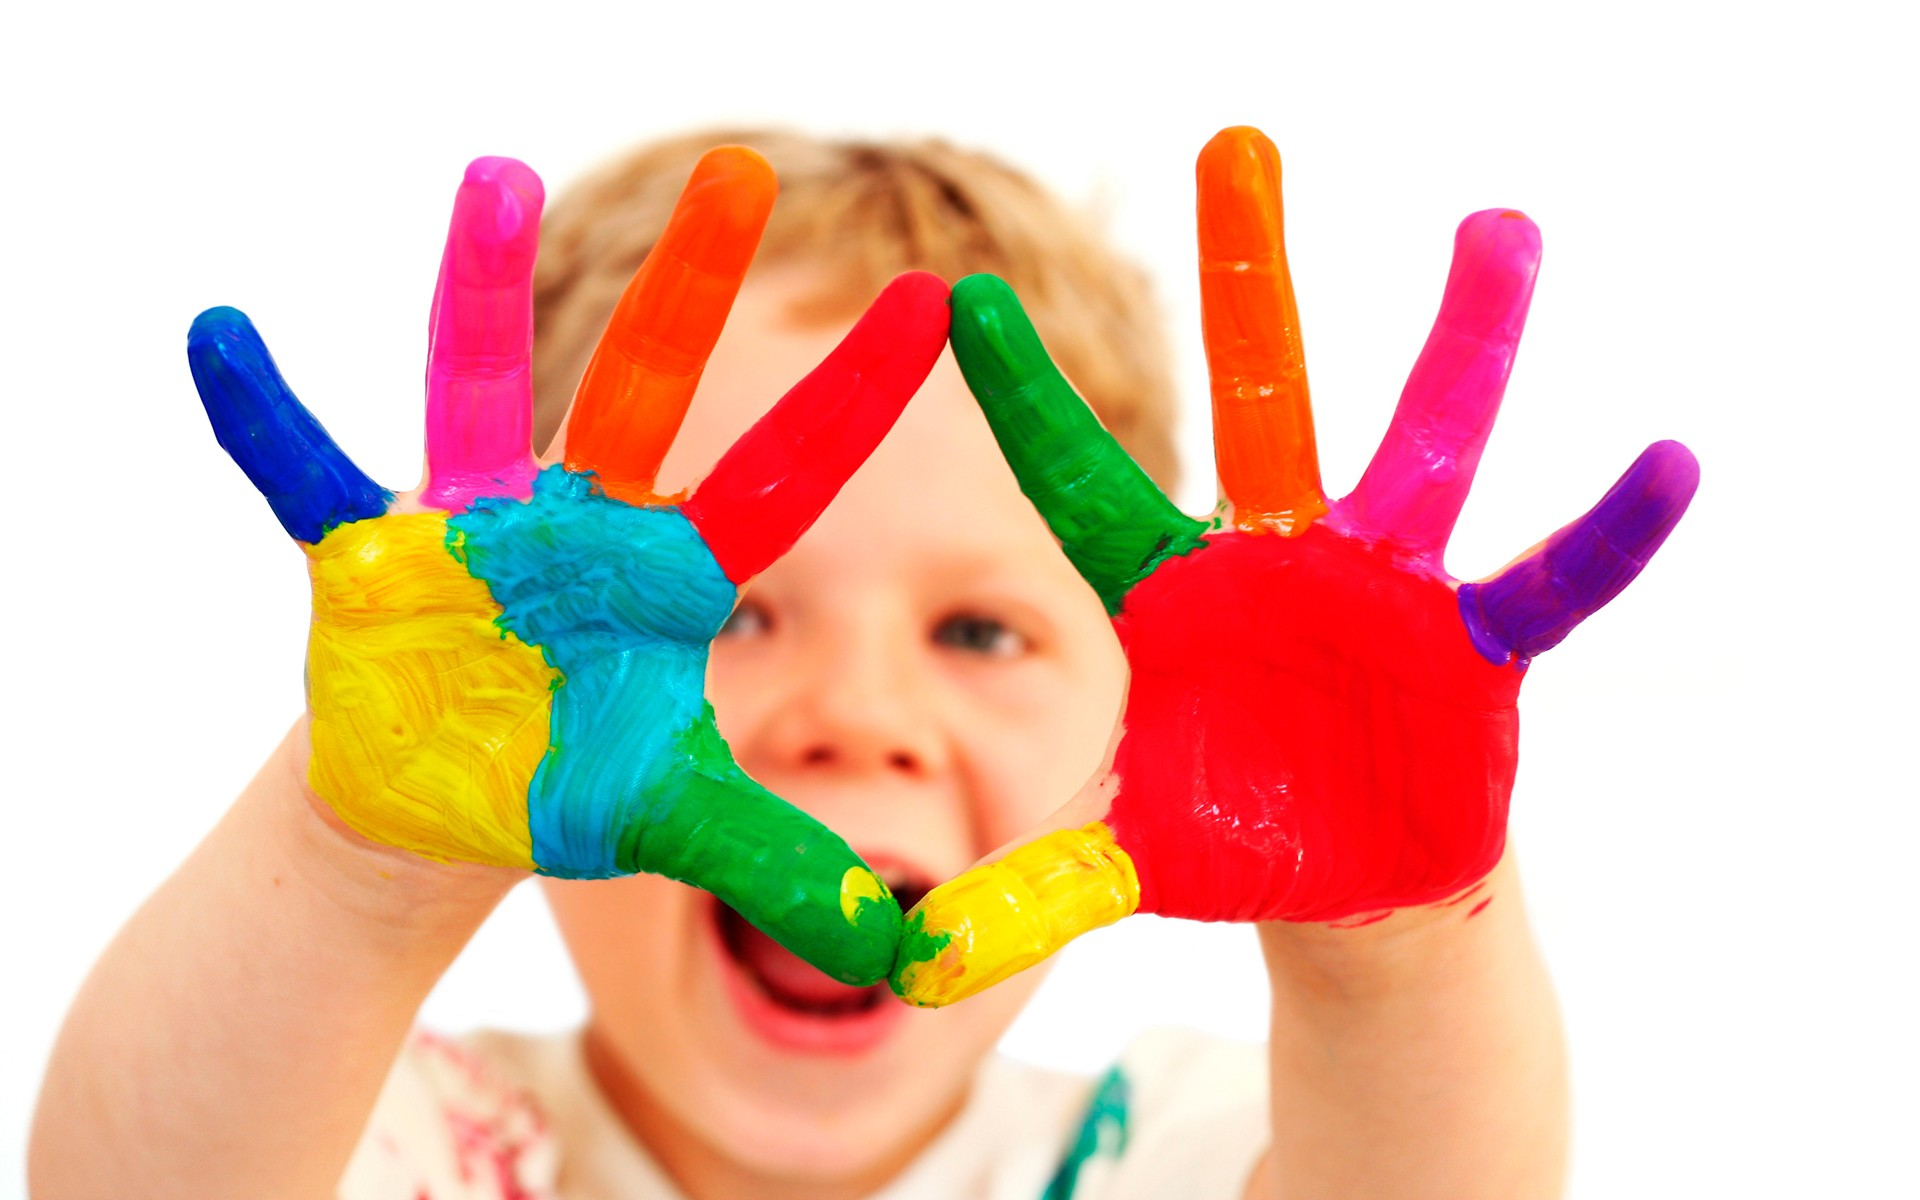 finger kids painting hd desktop wallpaper - Painting Images For Kids